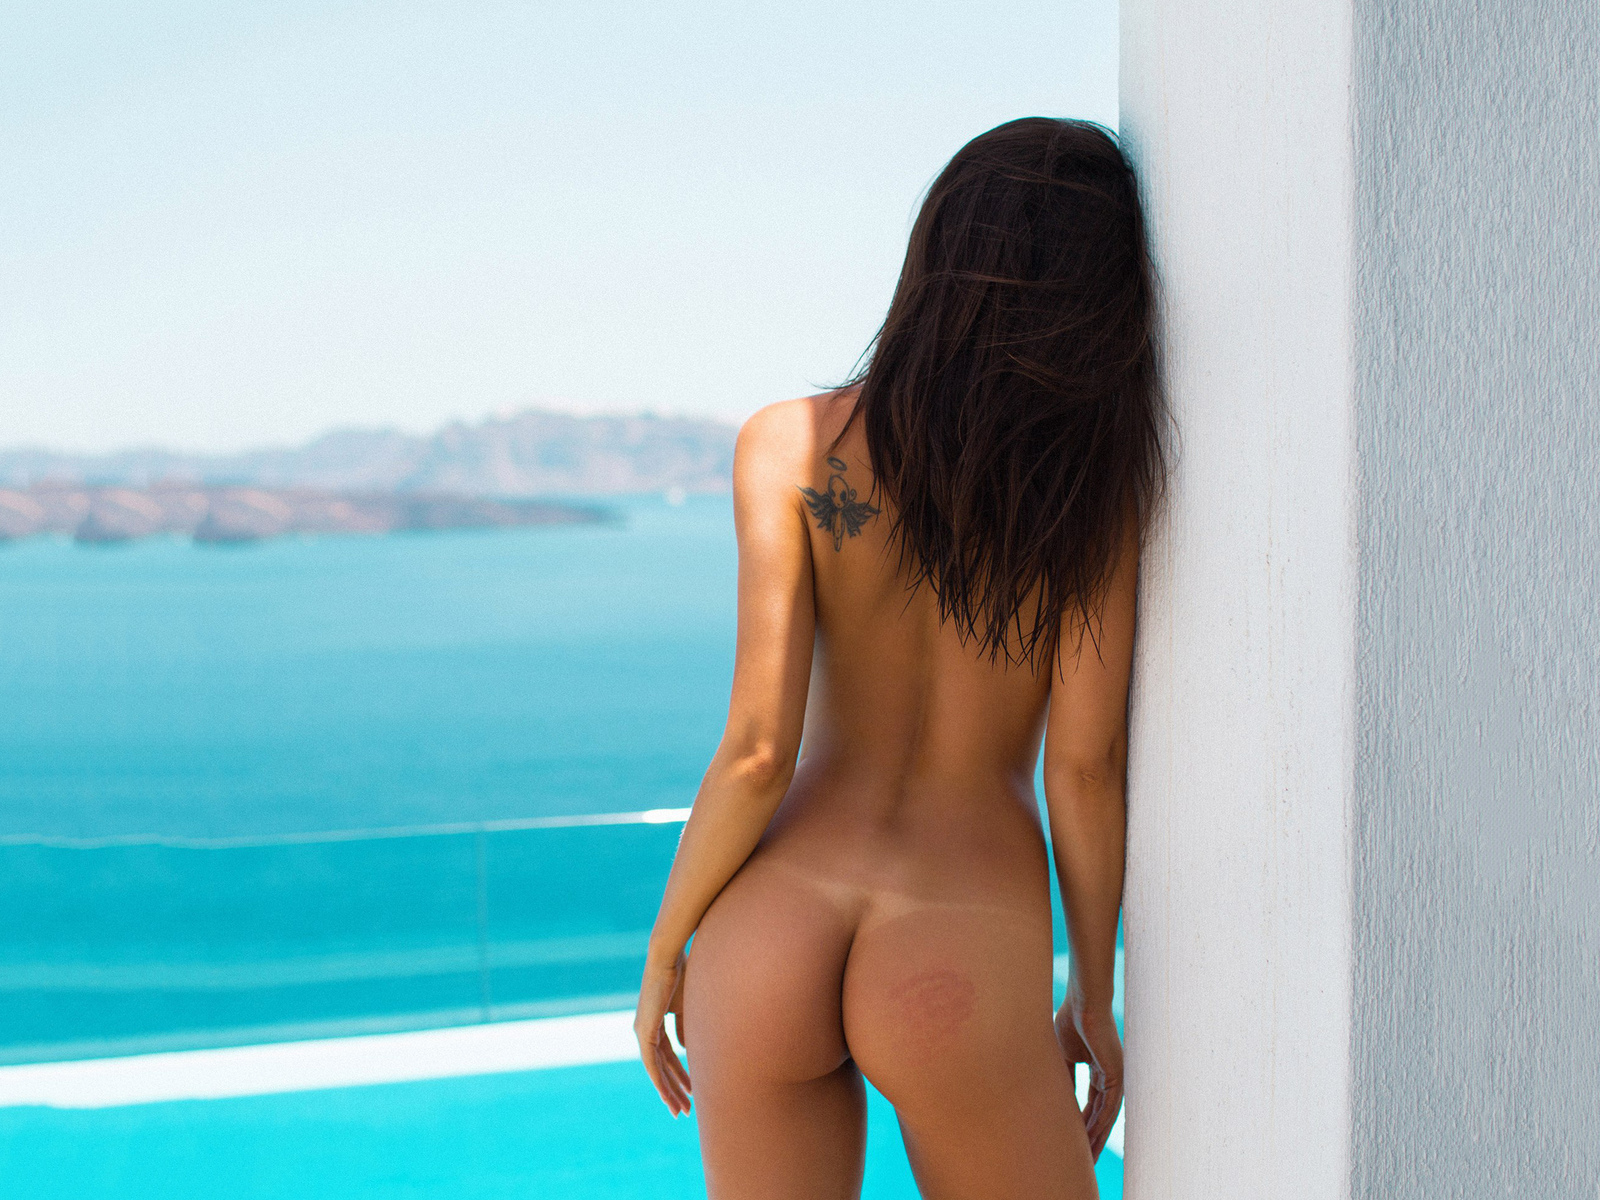 naked-tan-girl-butts-amatureporn-net